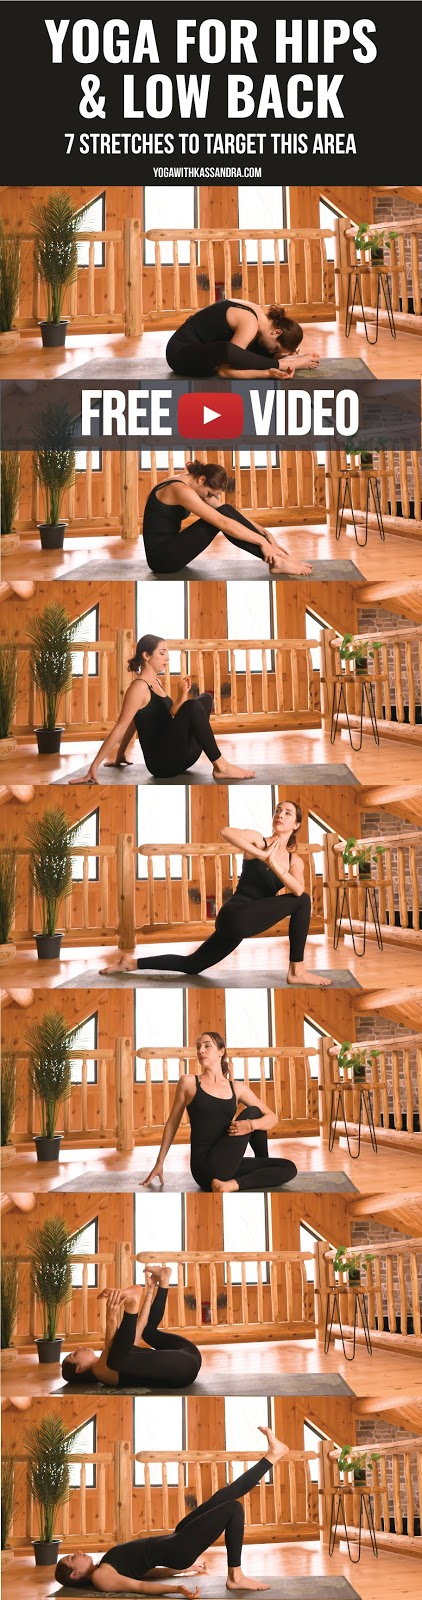 Morning Yoga for Low Back and Hip Opening